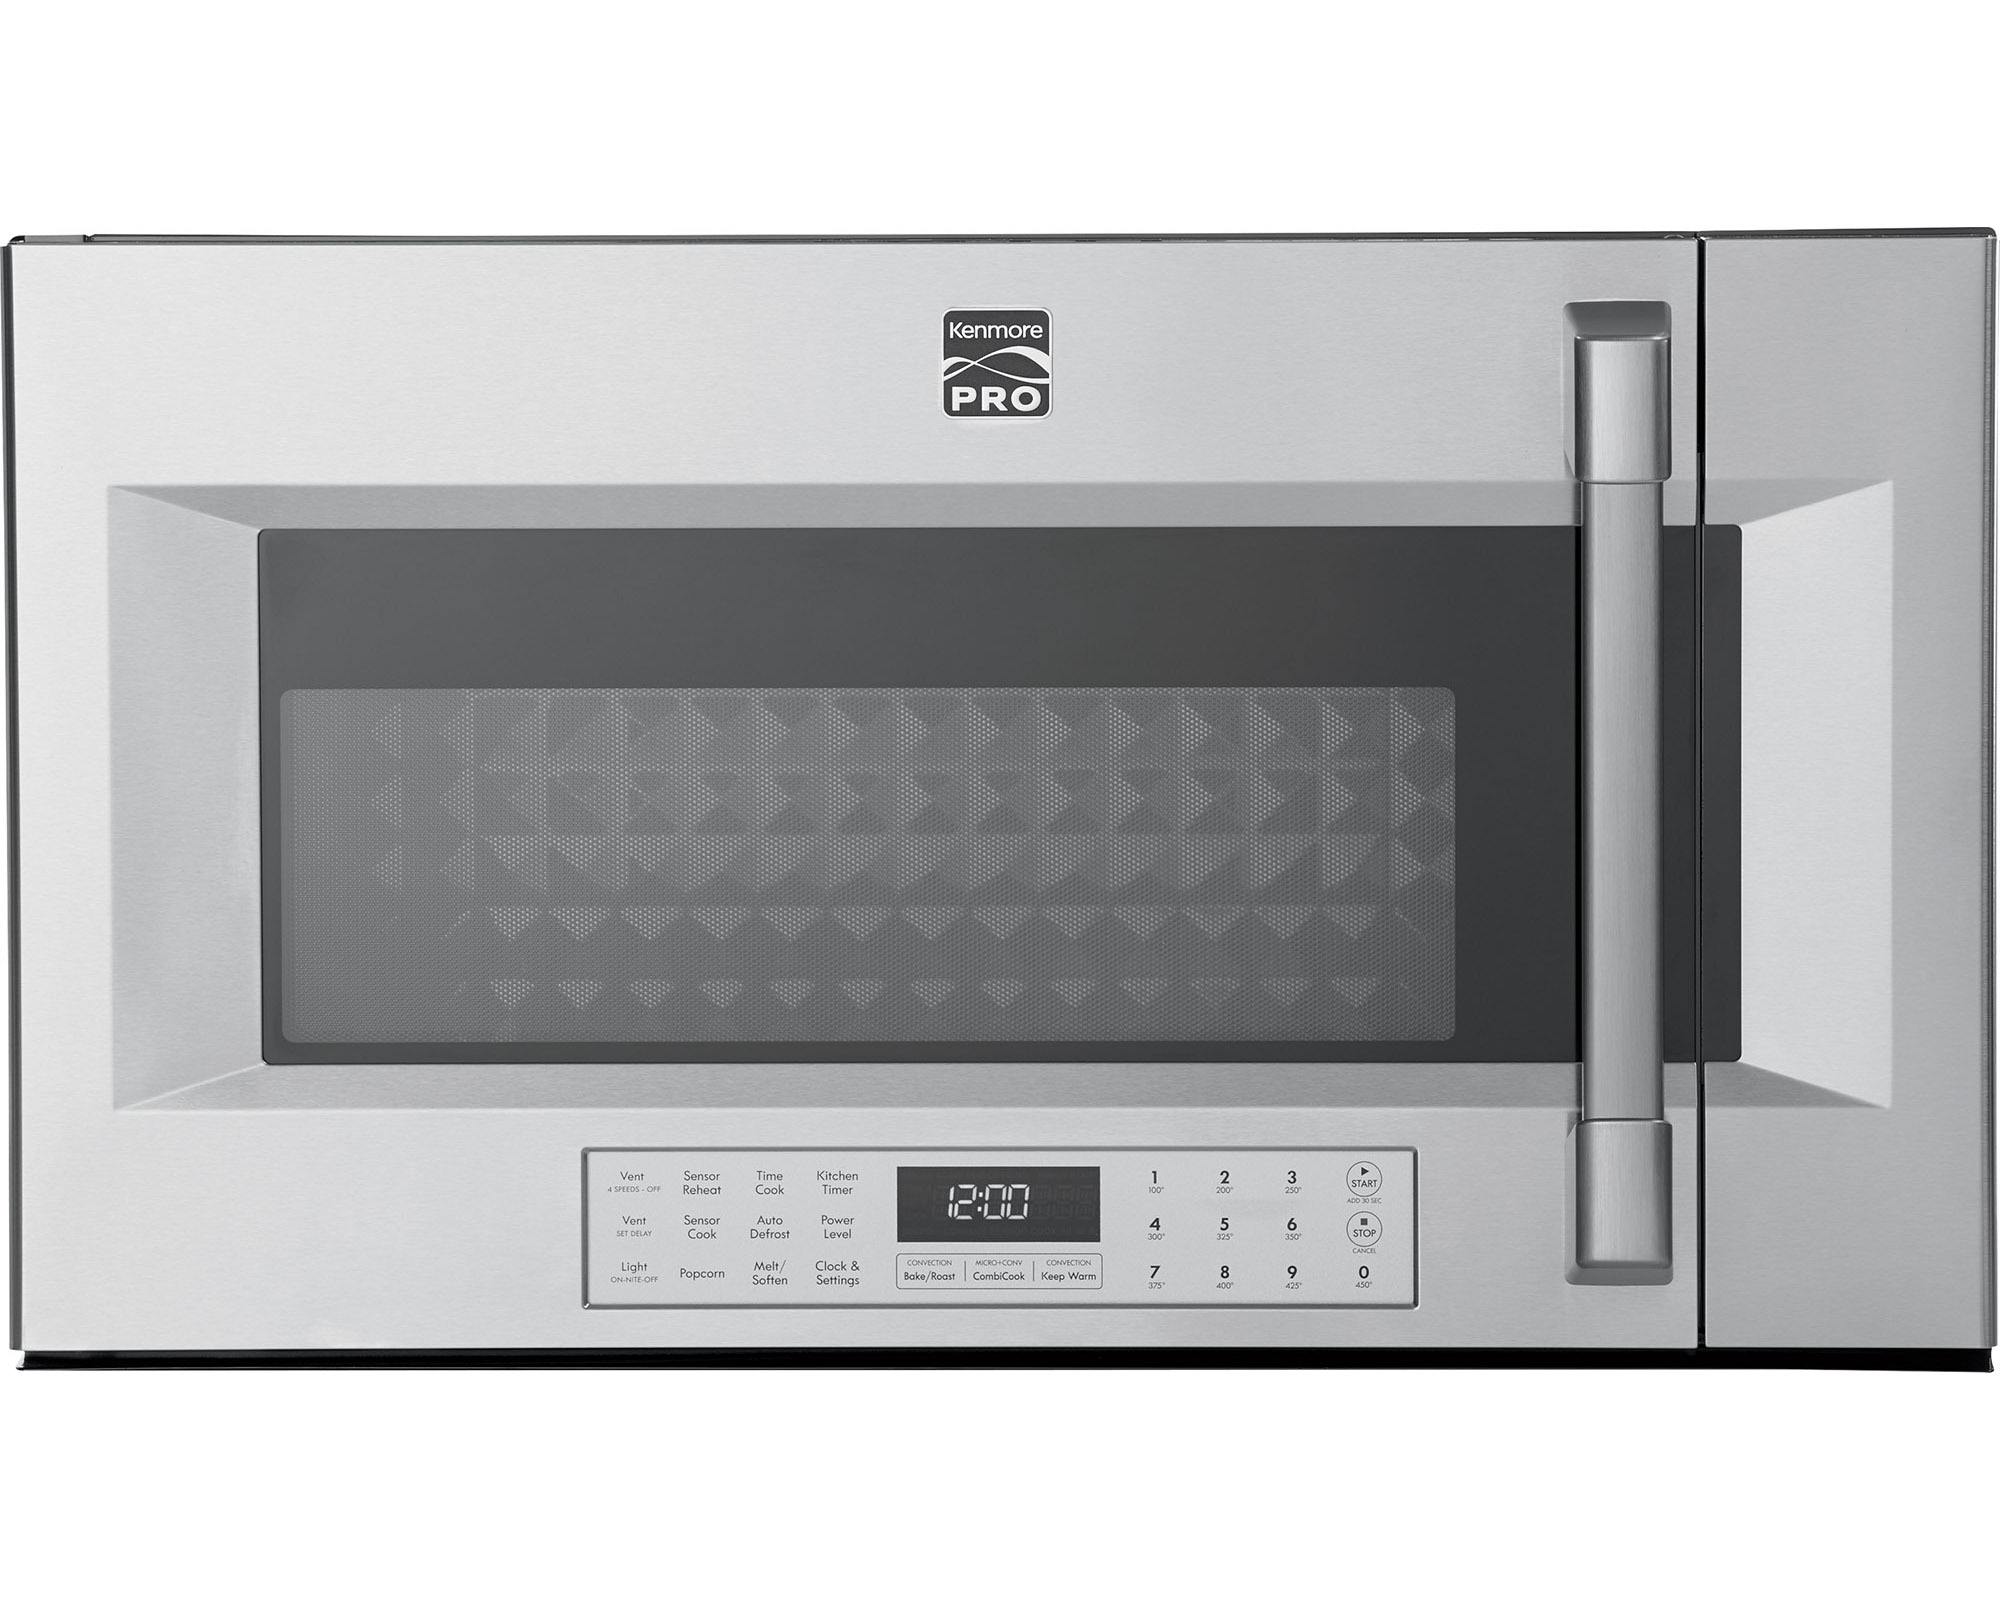 kenmore pro 89393 1 8 cu ft over